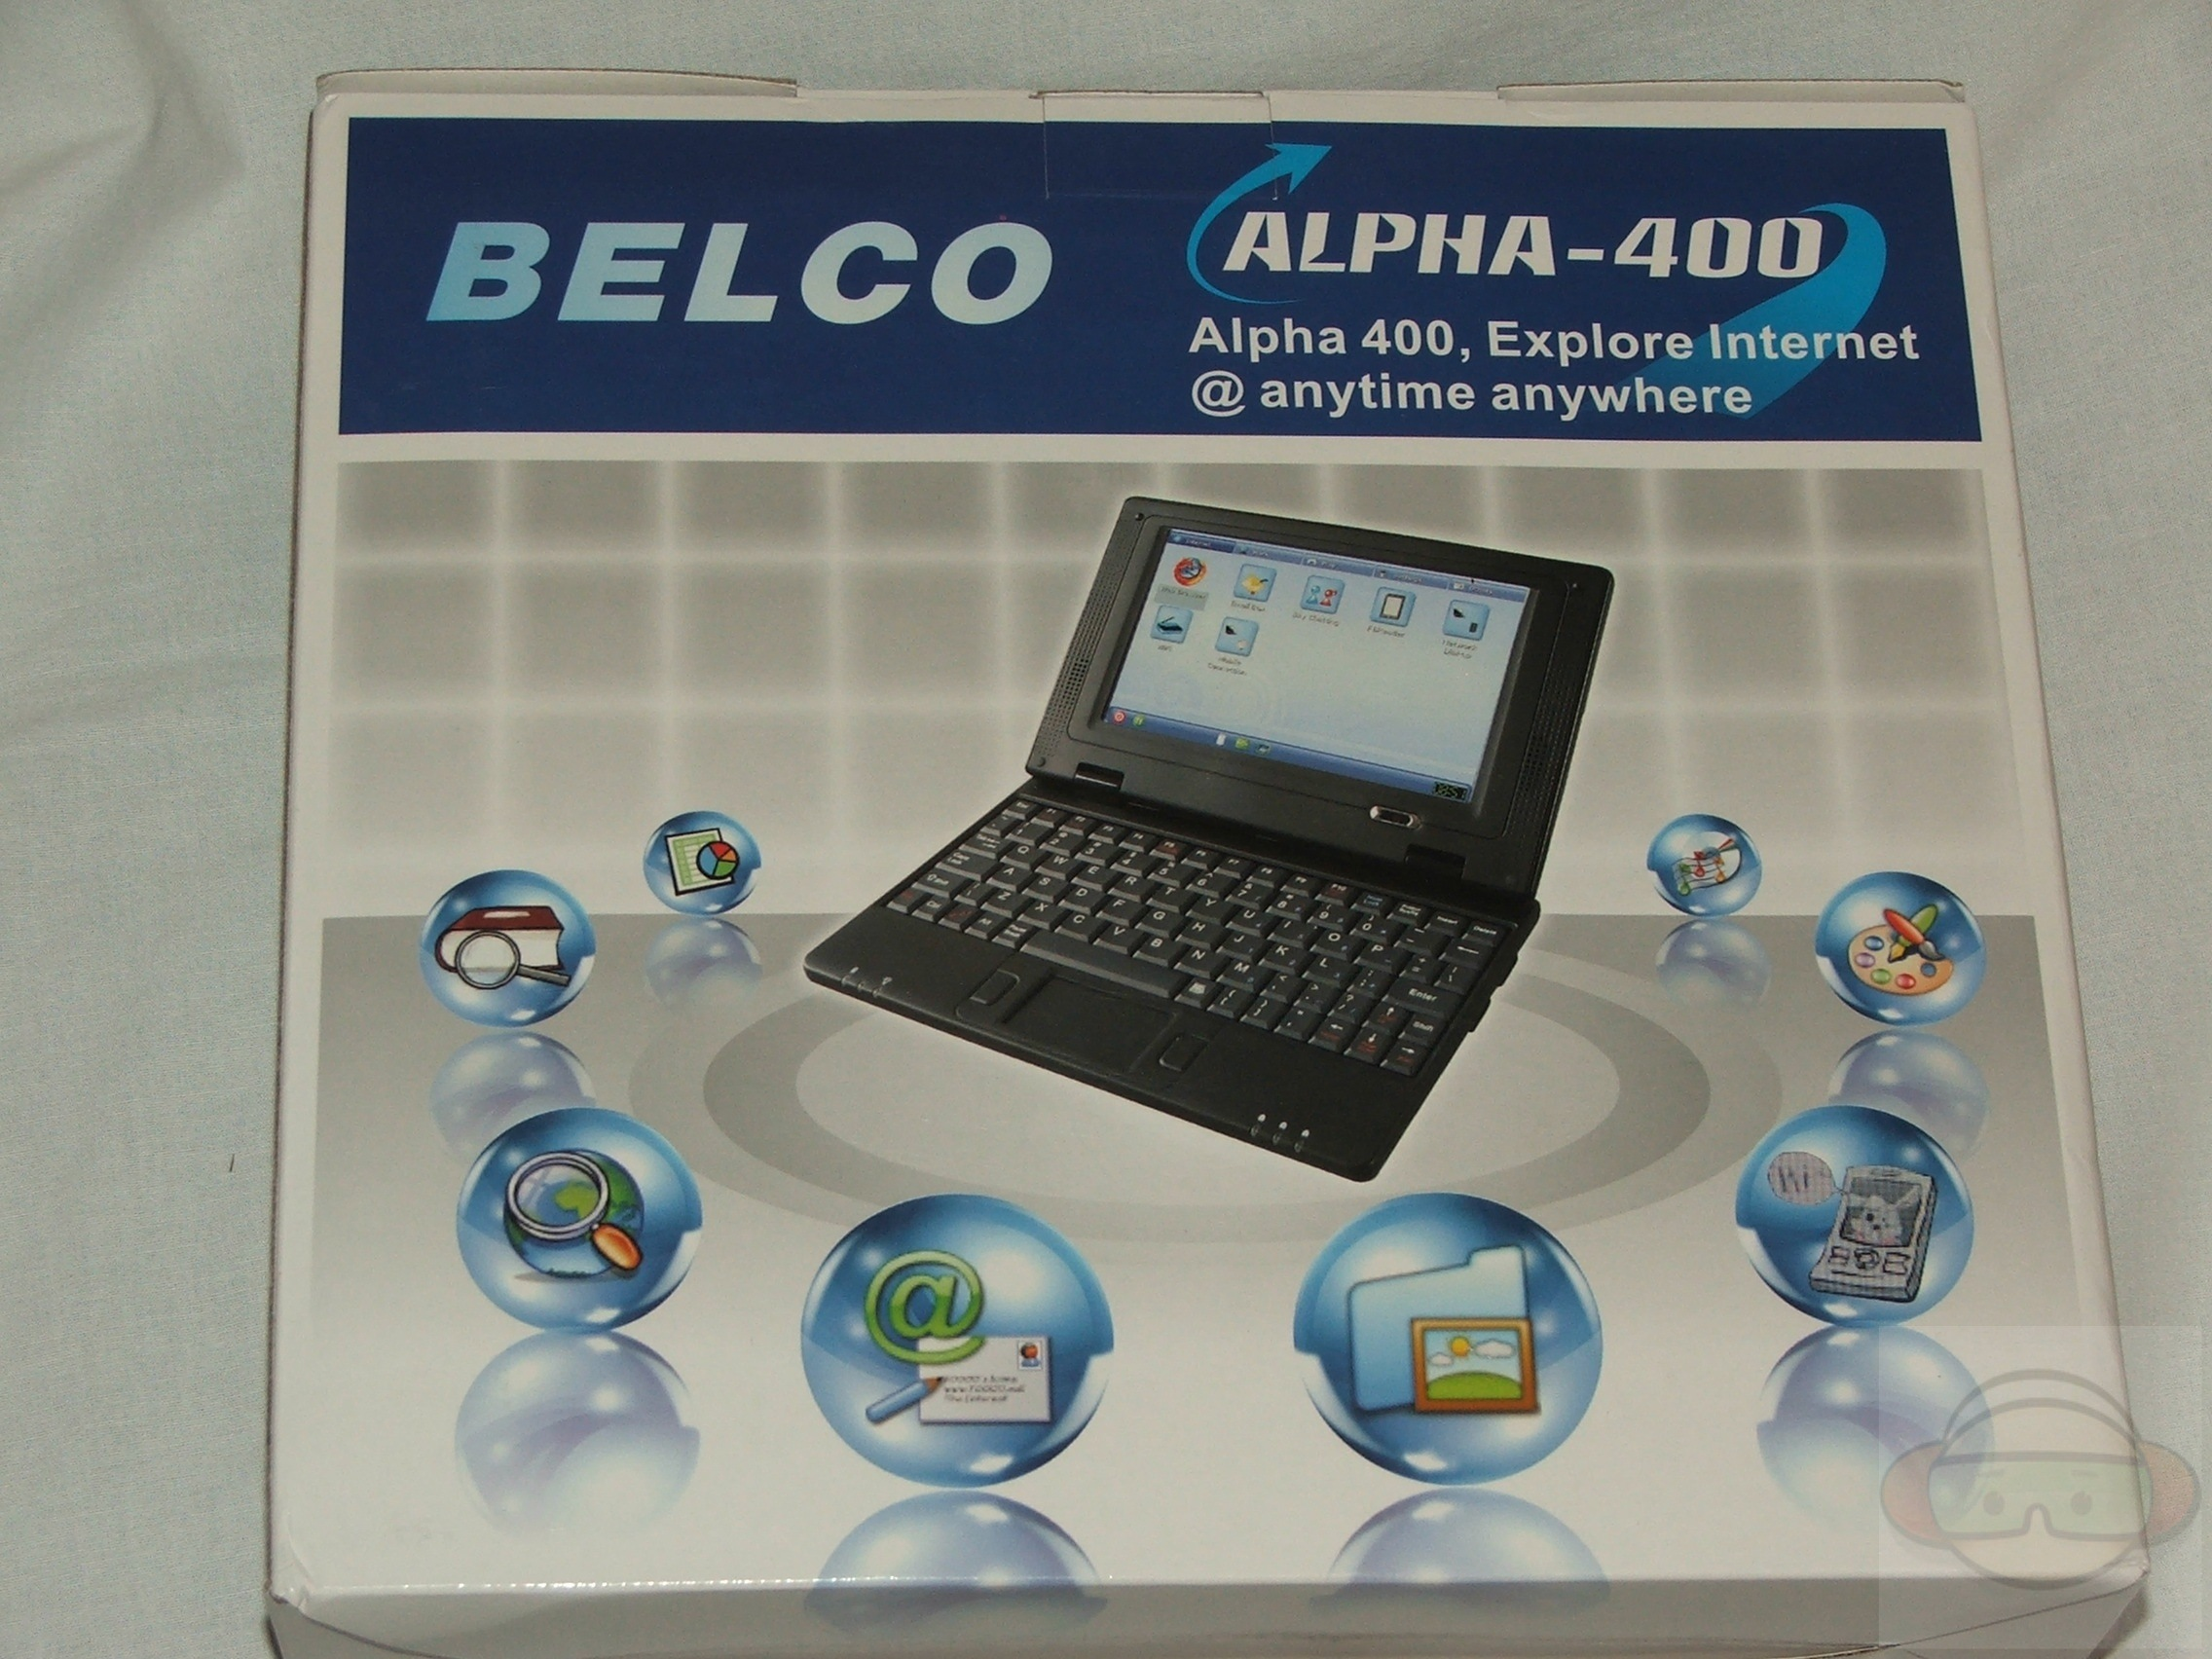 Alpha 400 MIPS 400MHz 128MB 1GB 7″ Linux Ultralite Notebook